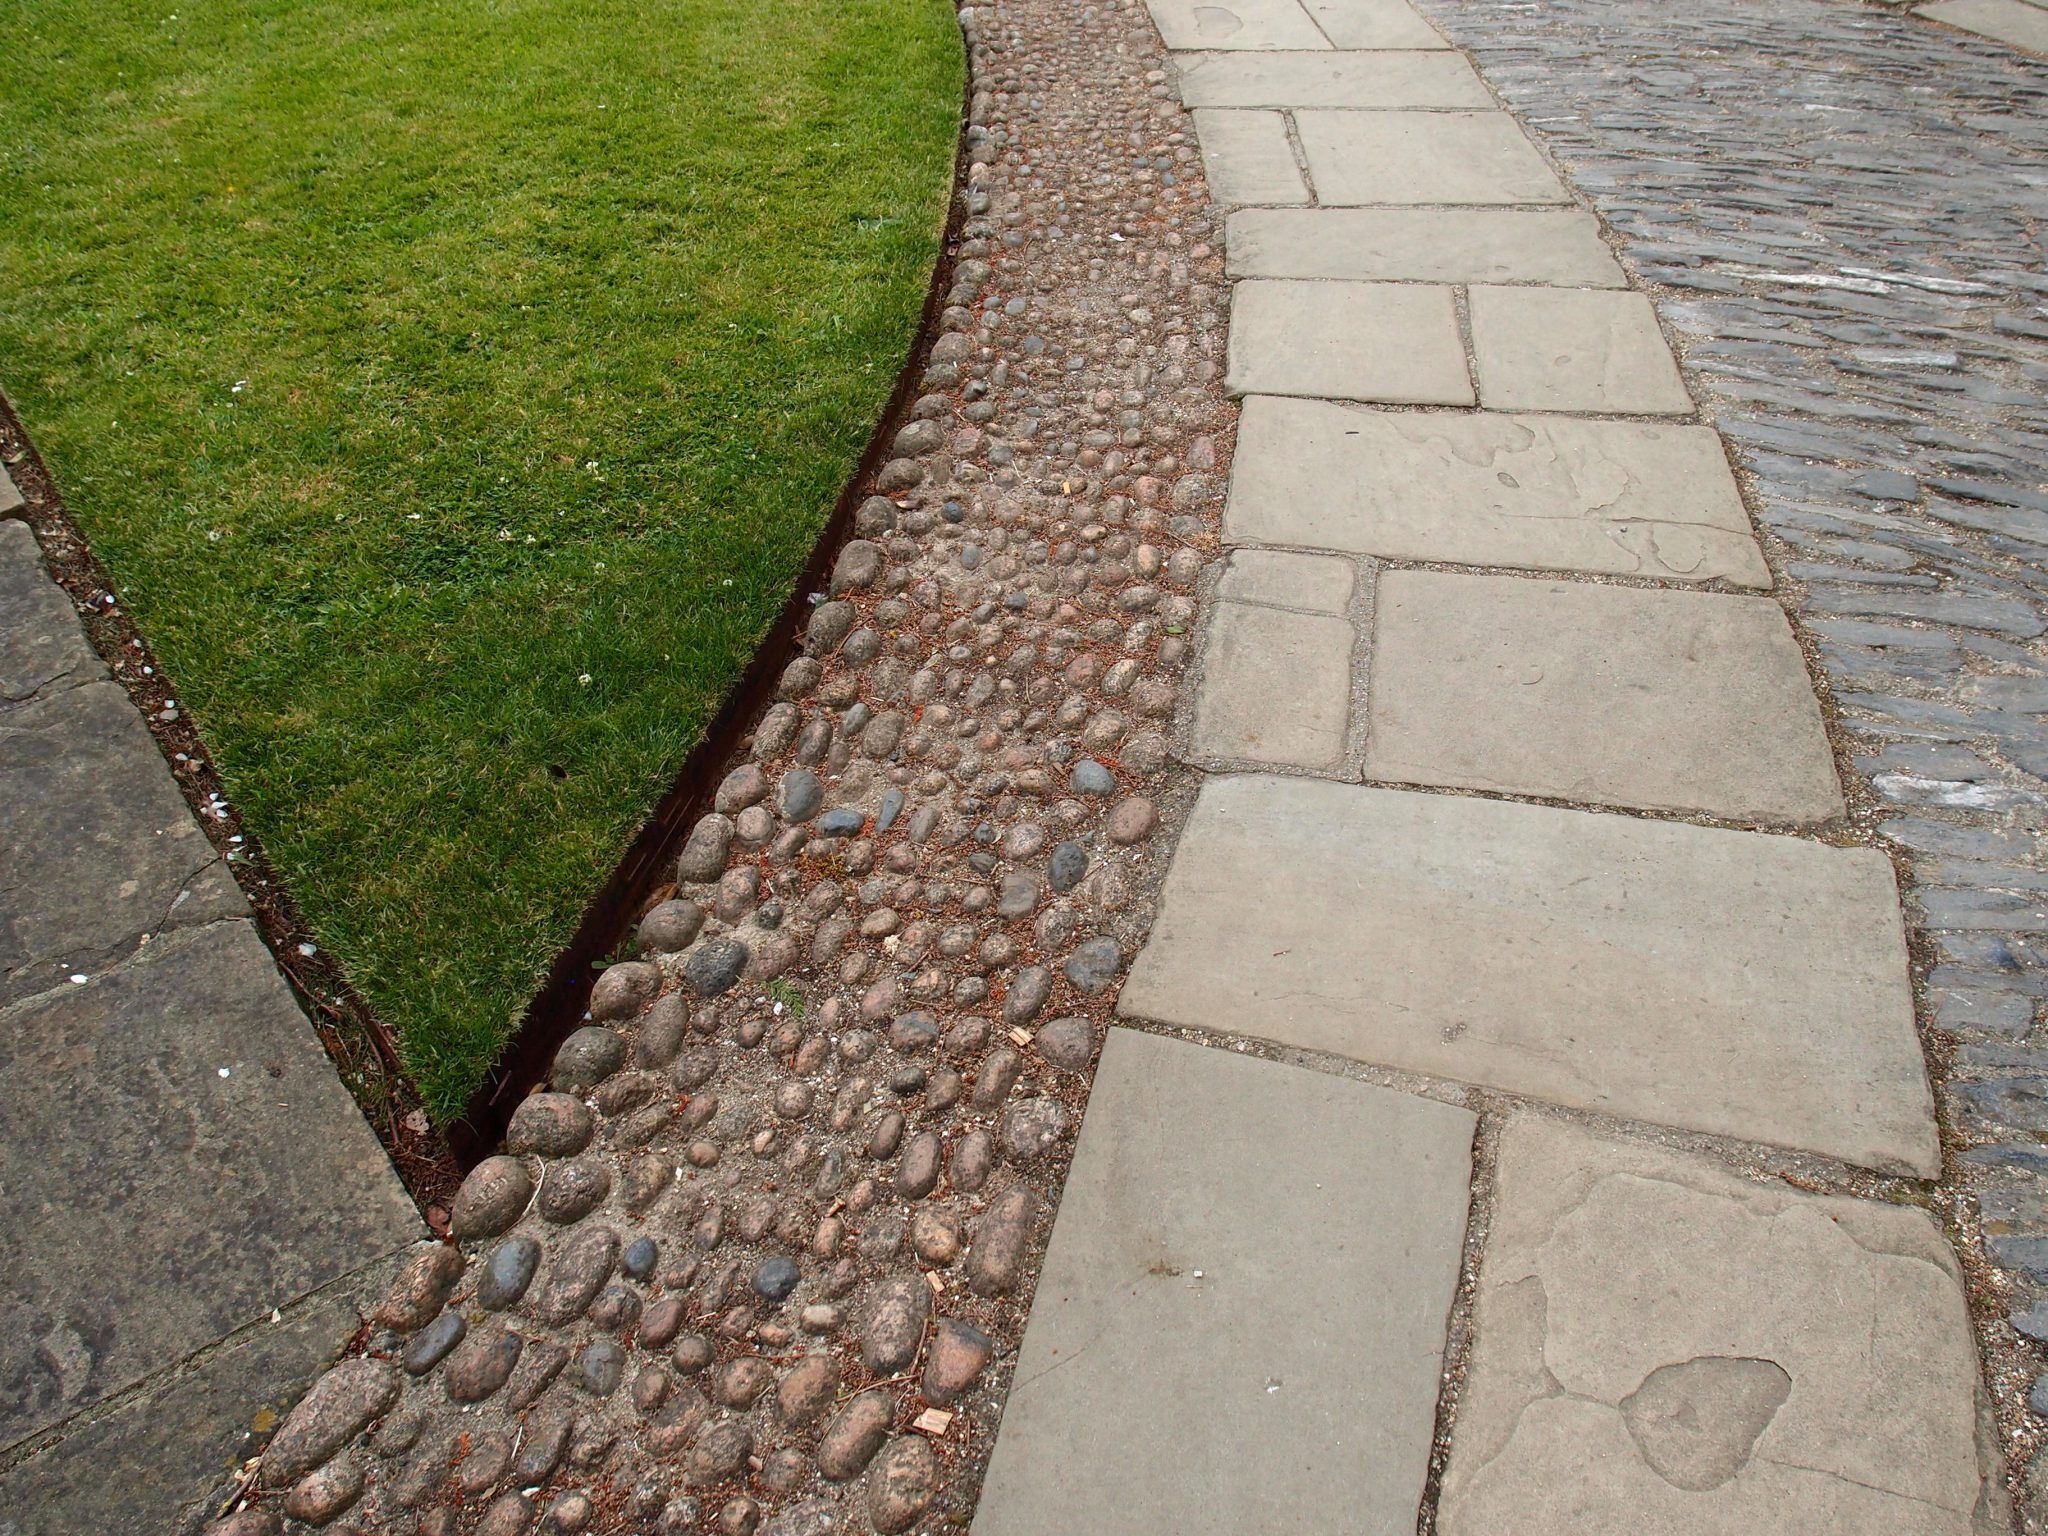 Courtyard paving detail